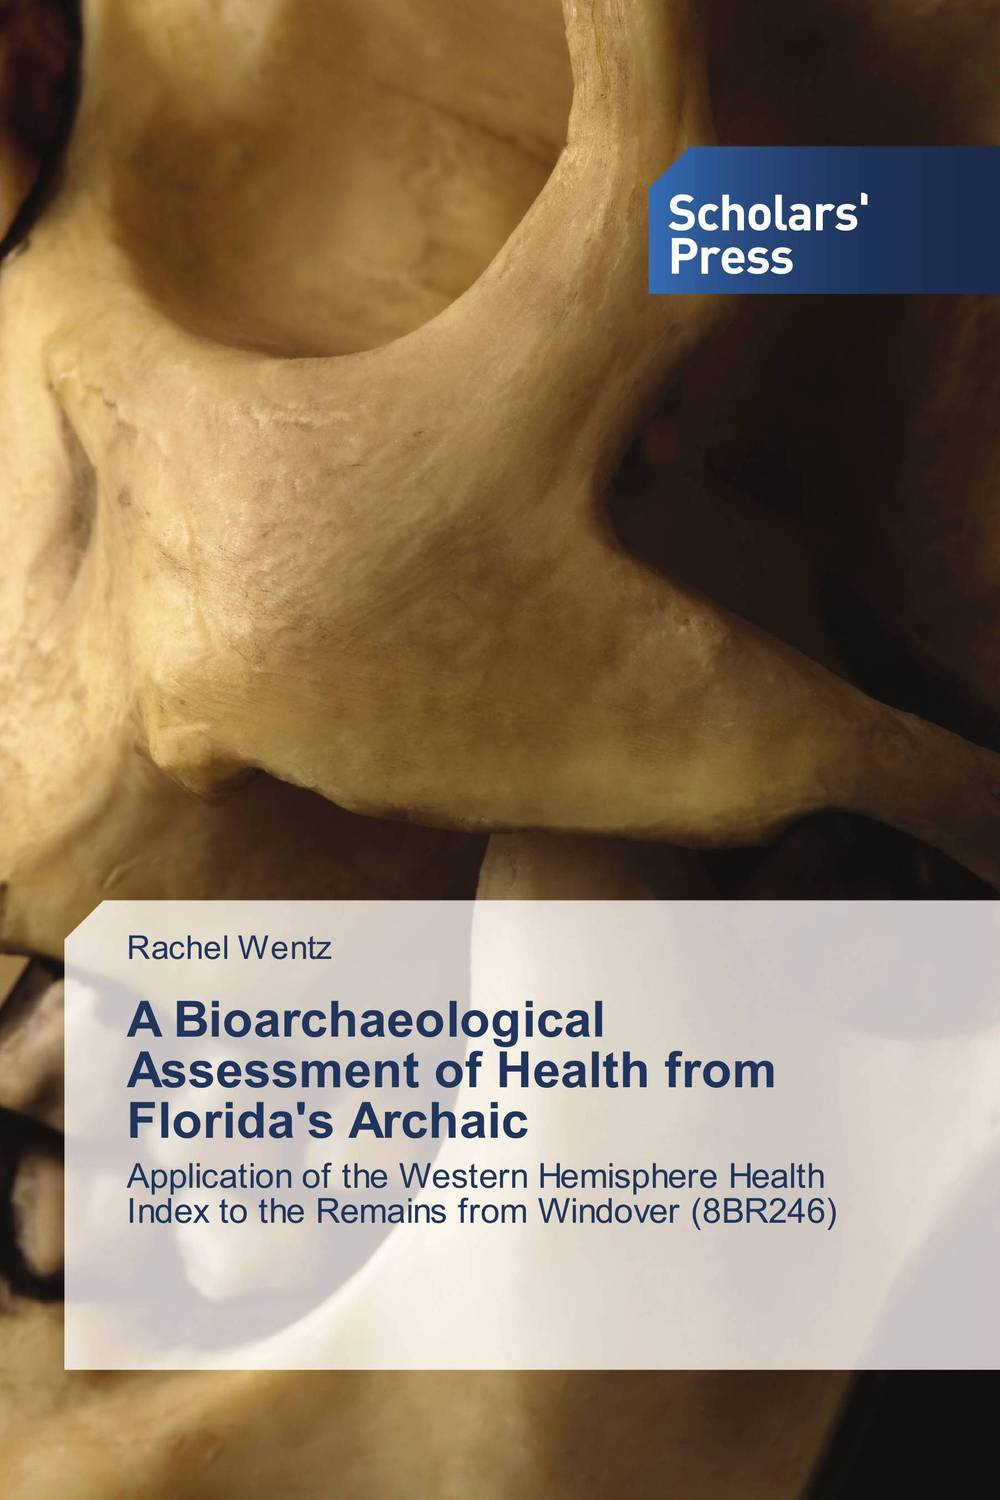 A Bioarchaeological Assessment of Health from Florida's Archaic hilton mambosho an osteological analysis of human skeletal remains from ansarve site